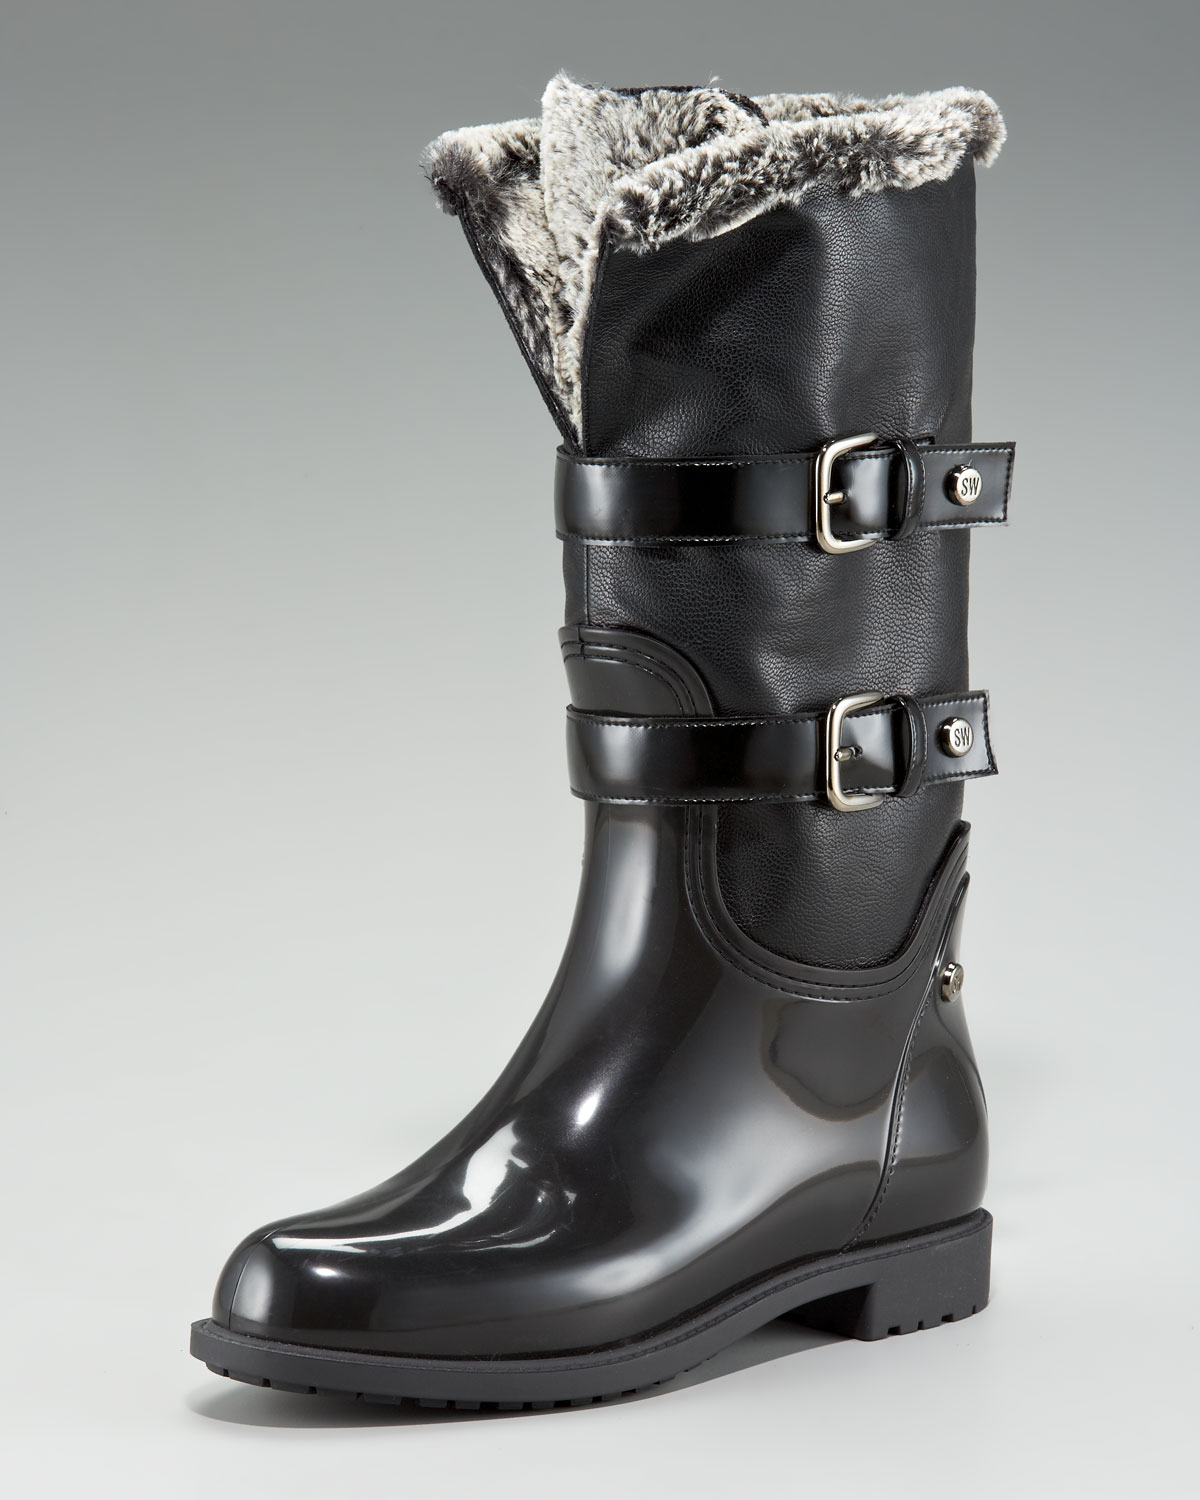 Stuart weitzman Faux-fur-lined Rain Boot in Black | Lyst